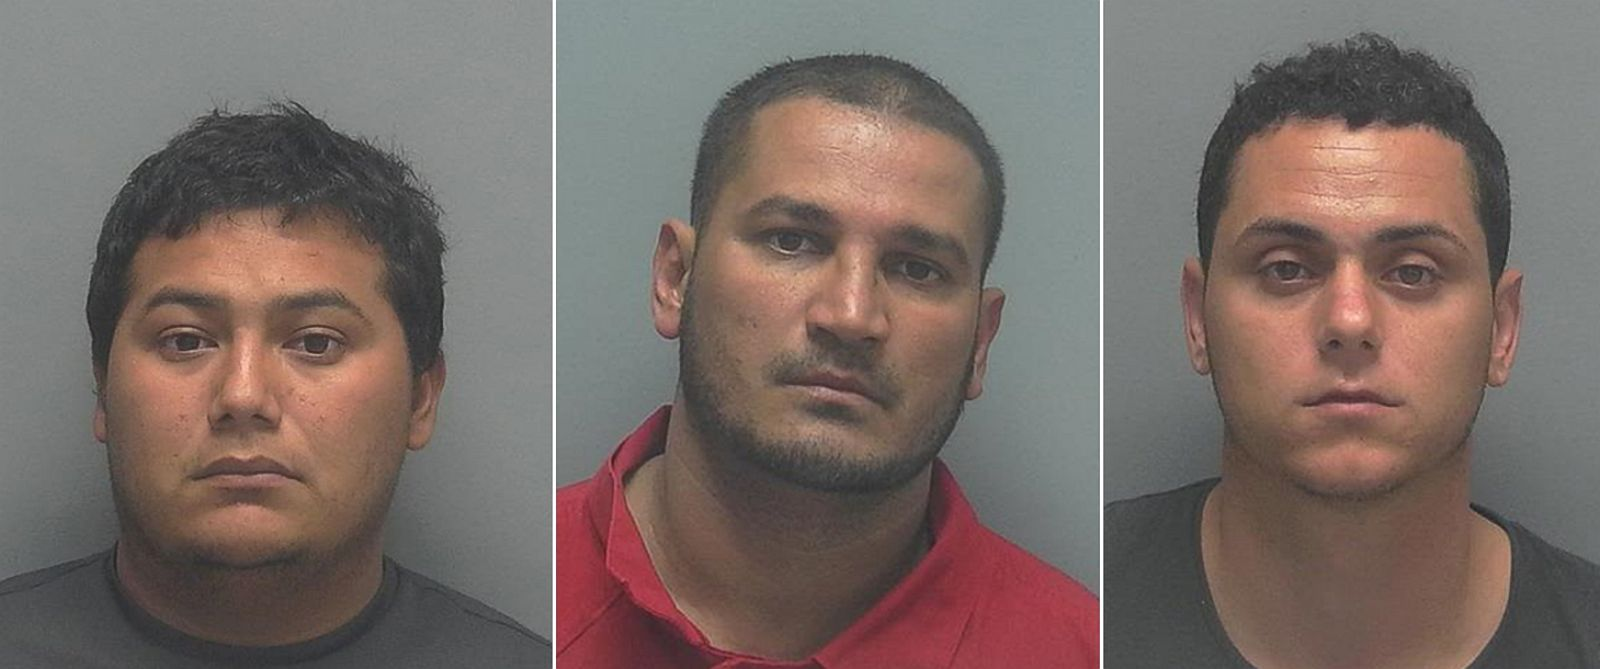 PHOTO: Suspected boat thieves from left, Vidal Benhur Ramirez-Farfan, David Llanes Vasquez and Raul De La Vega Sauri were apprehended about 125 miles east of Cancun, Mexico.